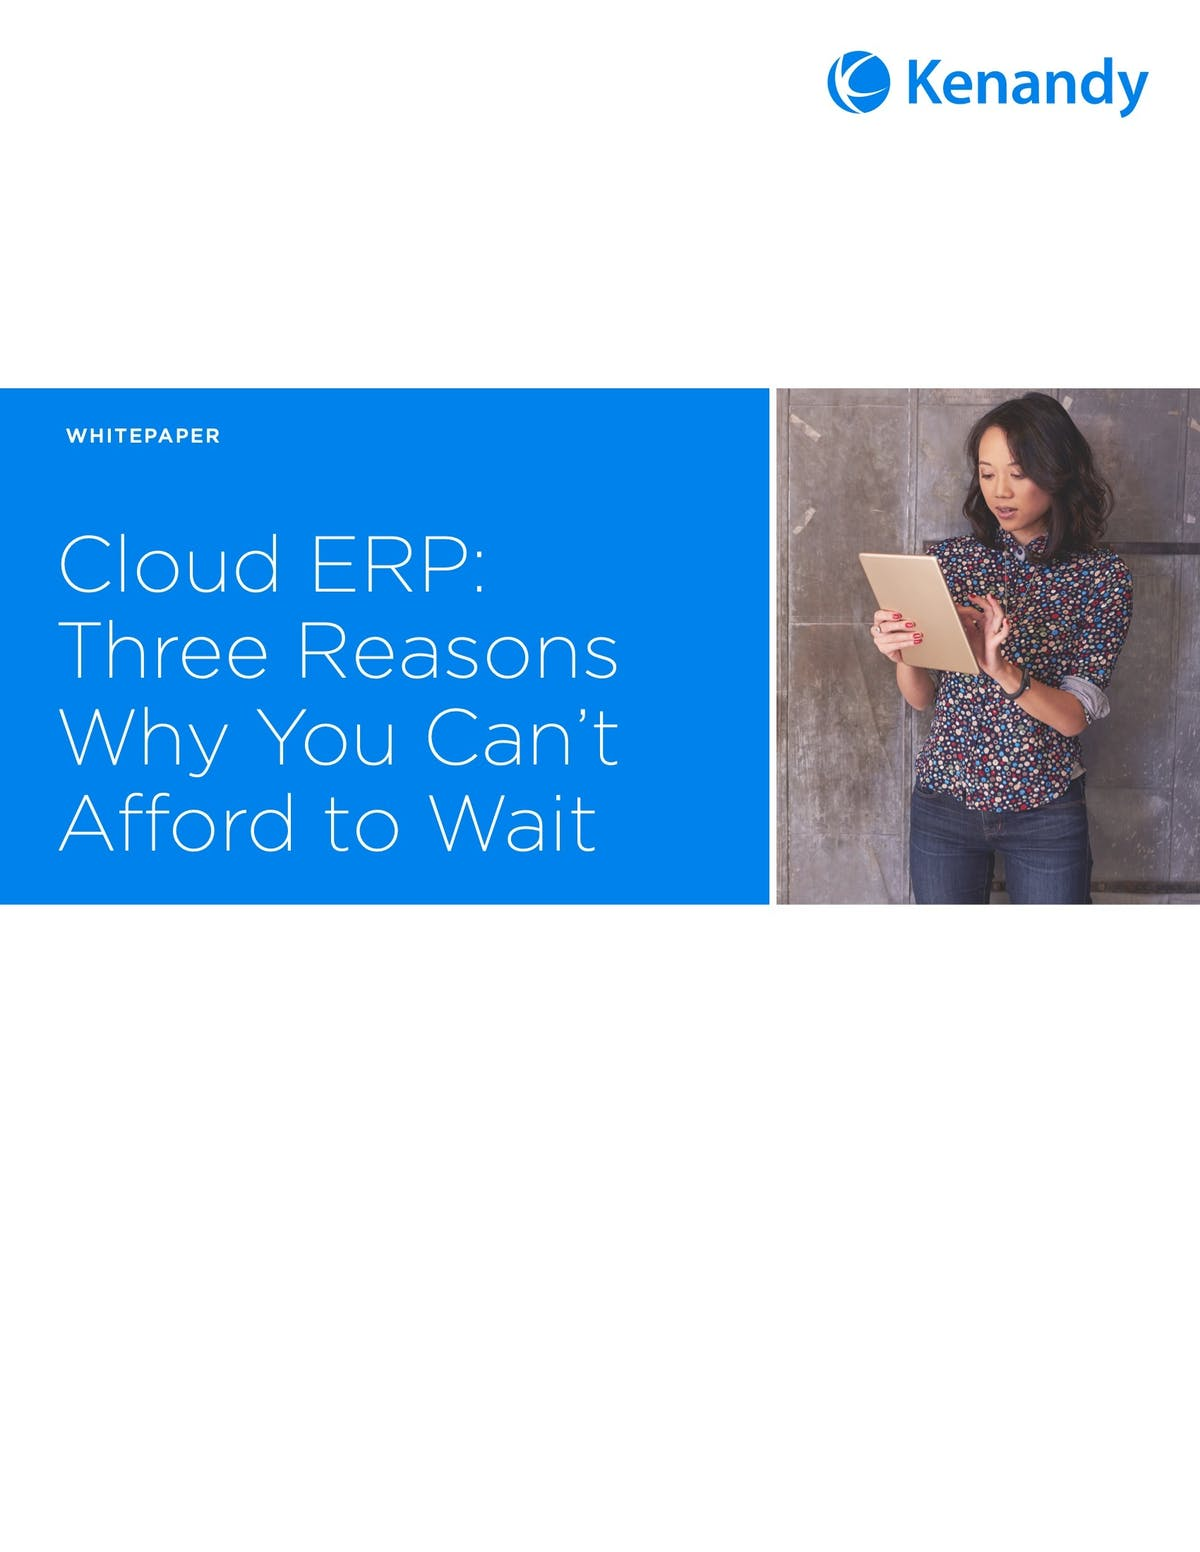 Kenandy ERP White Paper - Cloud ERP: Three Reasons Why You Can't Afford to Wait